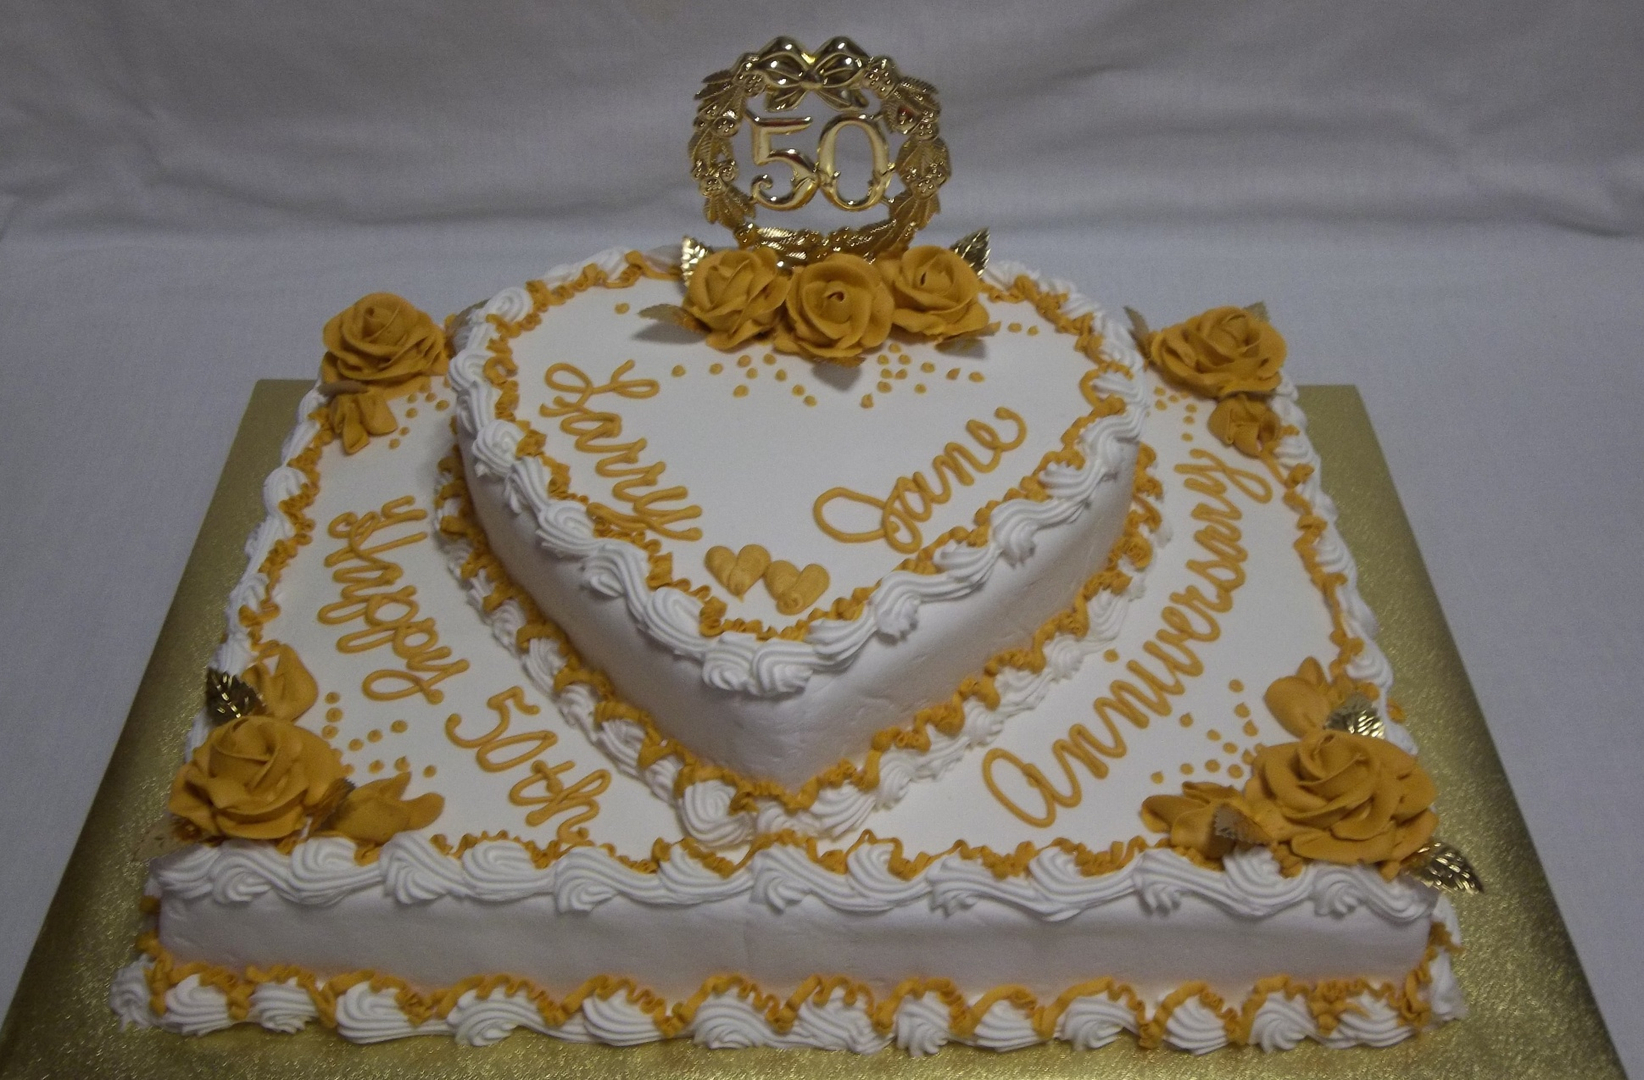 Custom made cakes and cookies in West - Anniversary Cakes 1 Sheet cakes